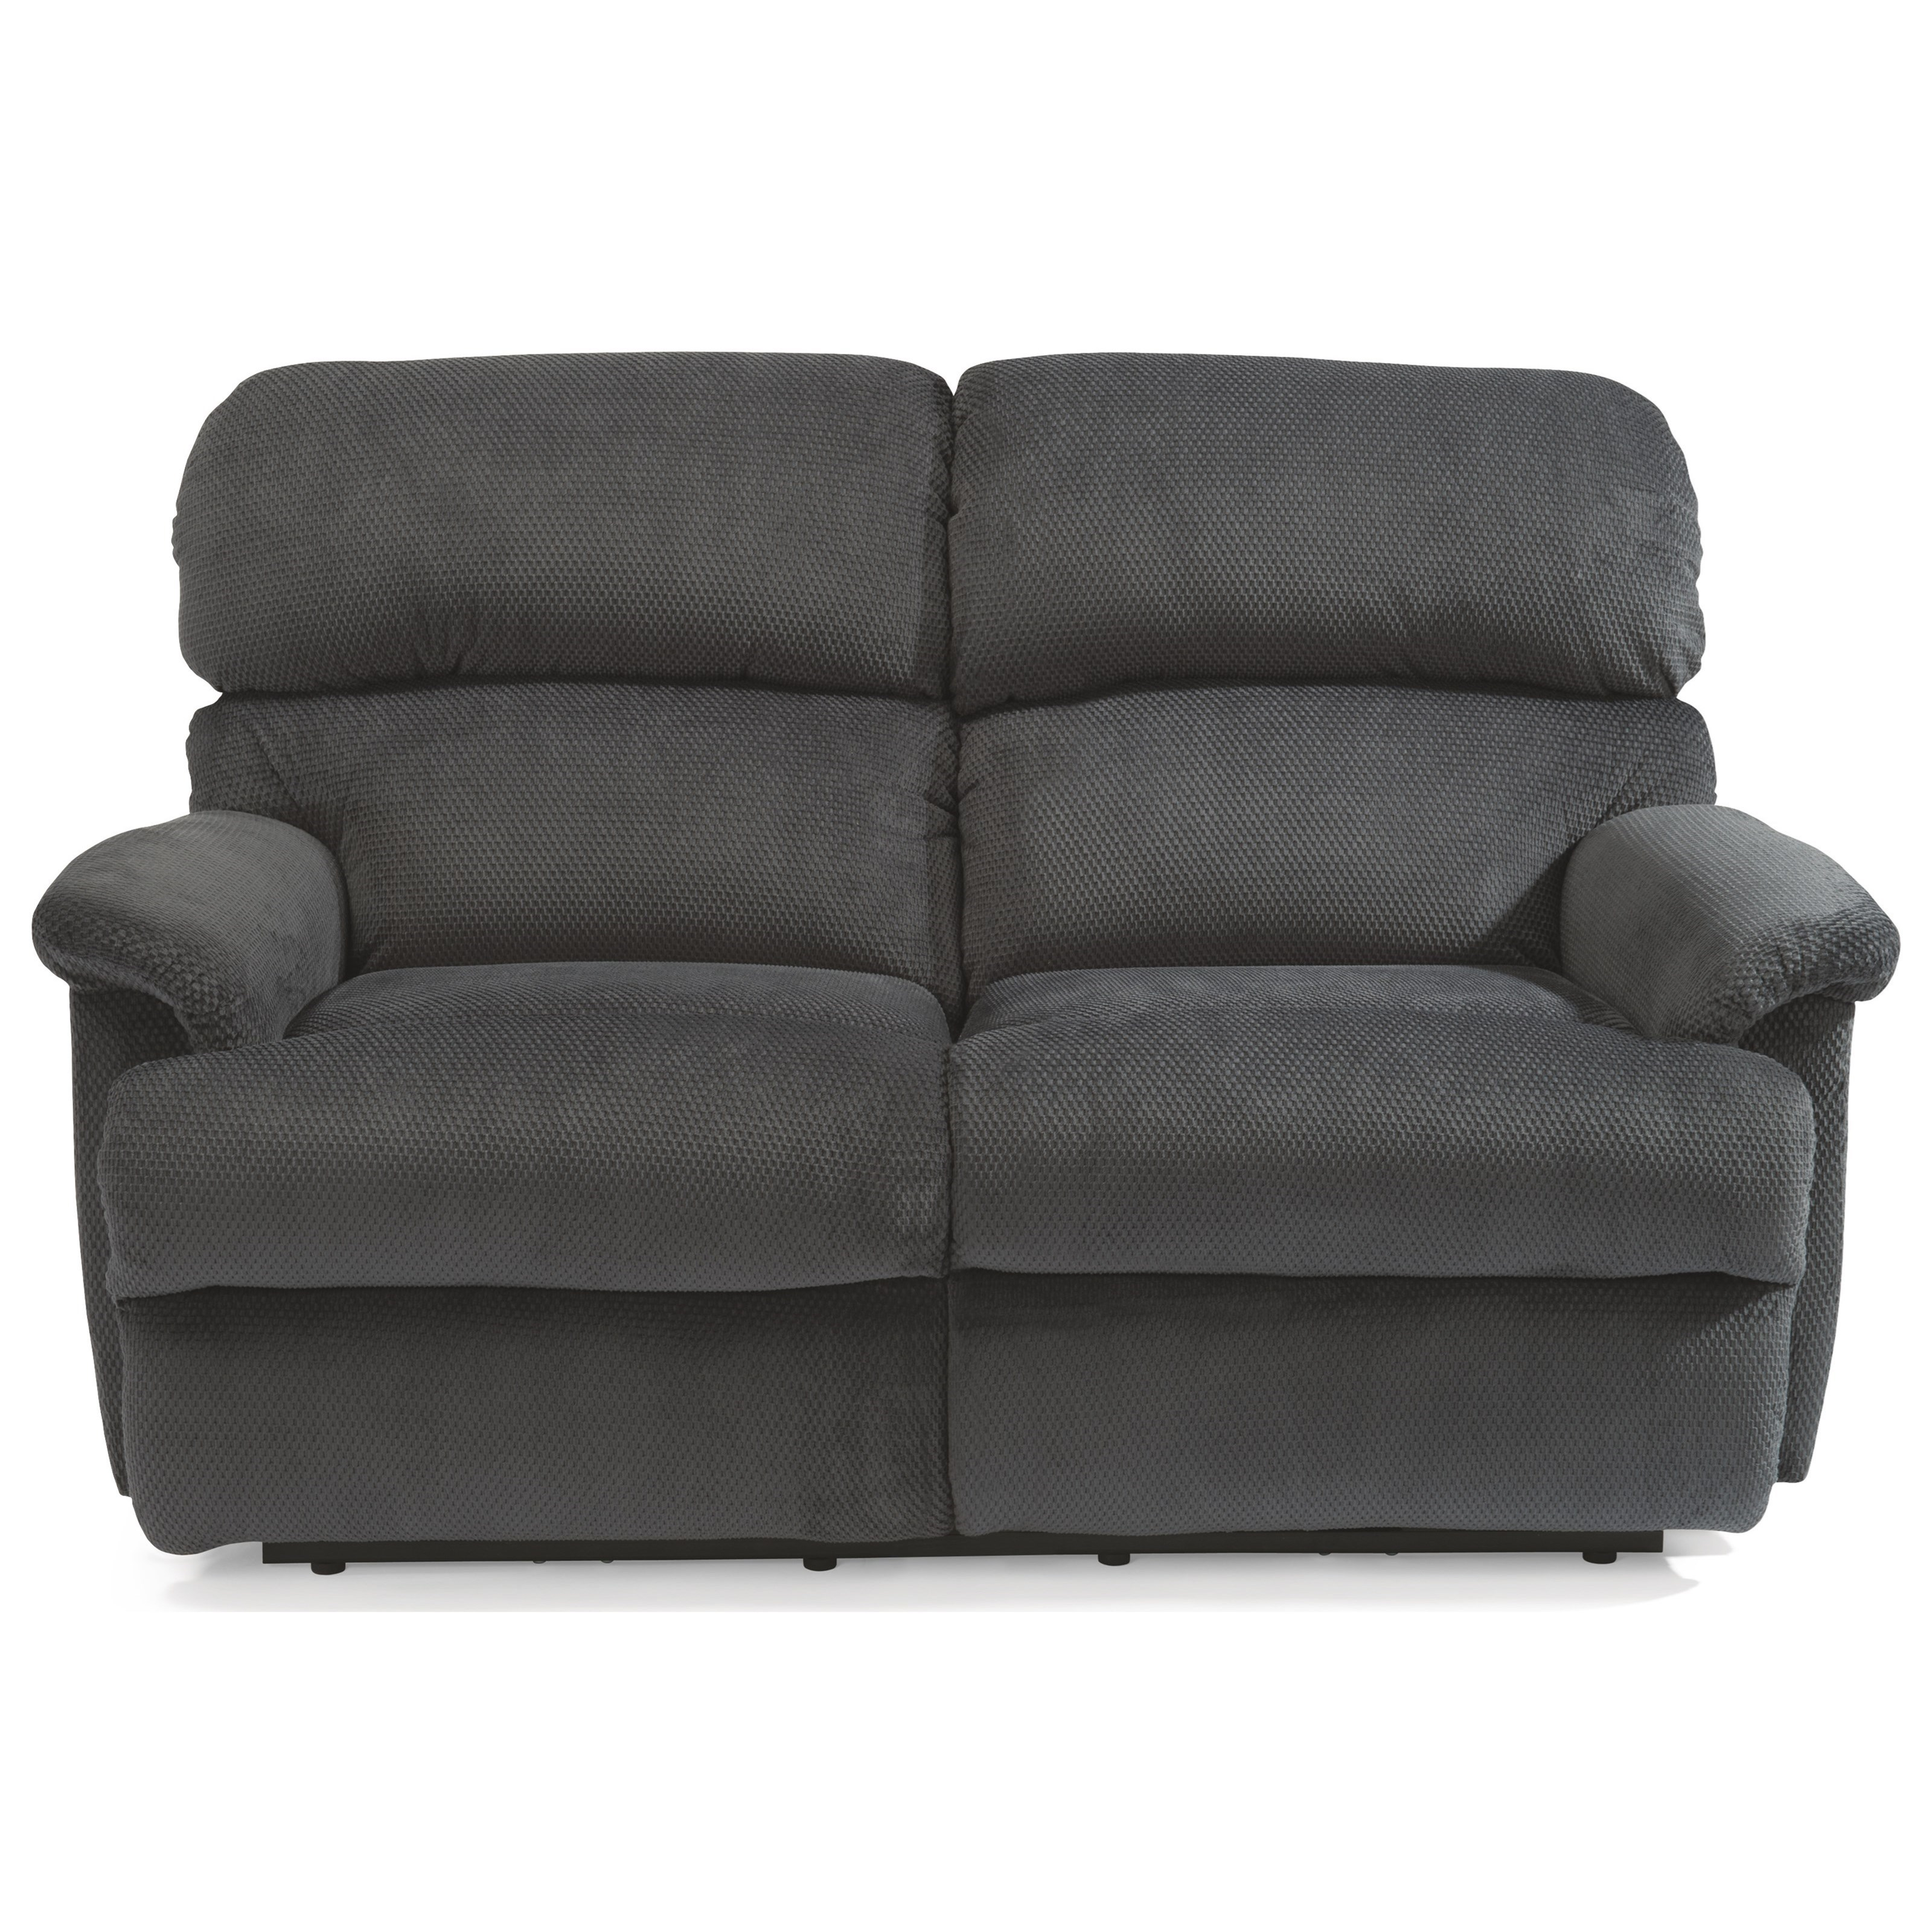 Flexsteel Sofa Locations: Flexsteel Chicago 7066-60 Reclining Love Seat